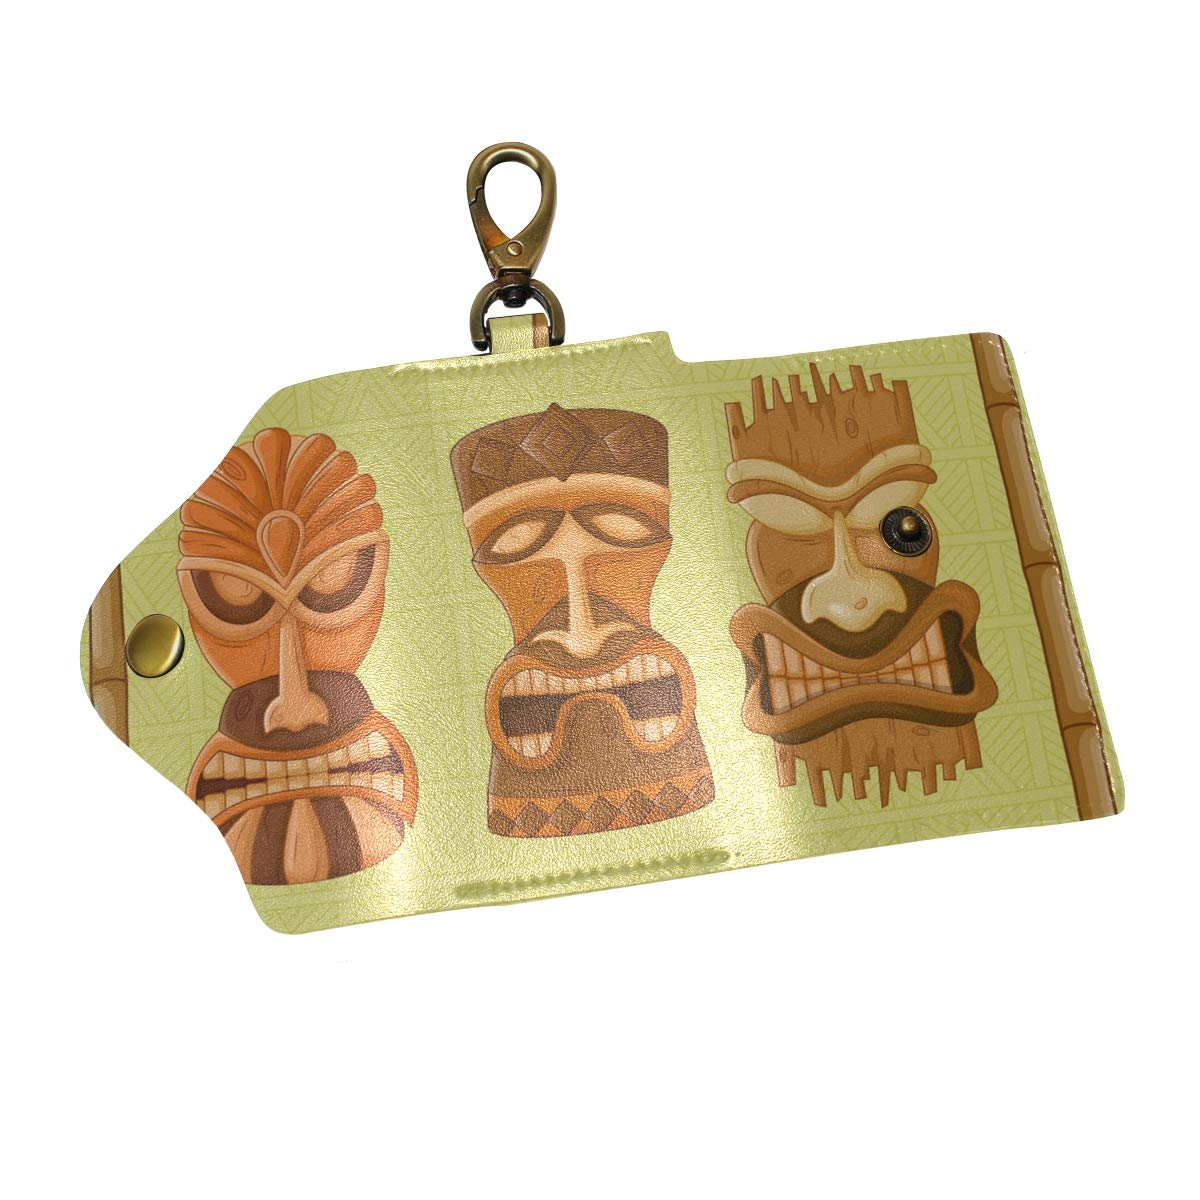 KEAKIA Hawaiian Tiki Tribal Mask Leather Key Case Wallets Tri-fold Key Holder Keychains with 6 Hooks 2 Slot Snap Closure for Men Women